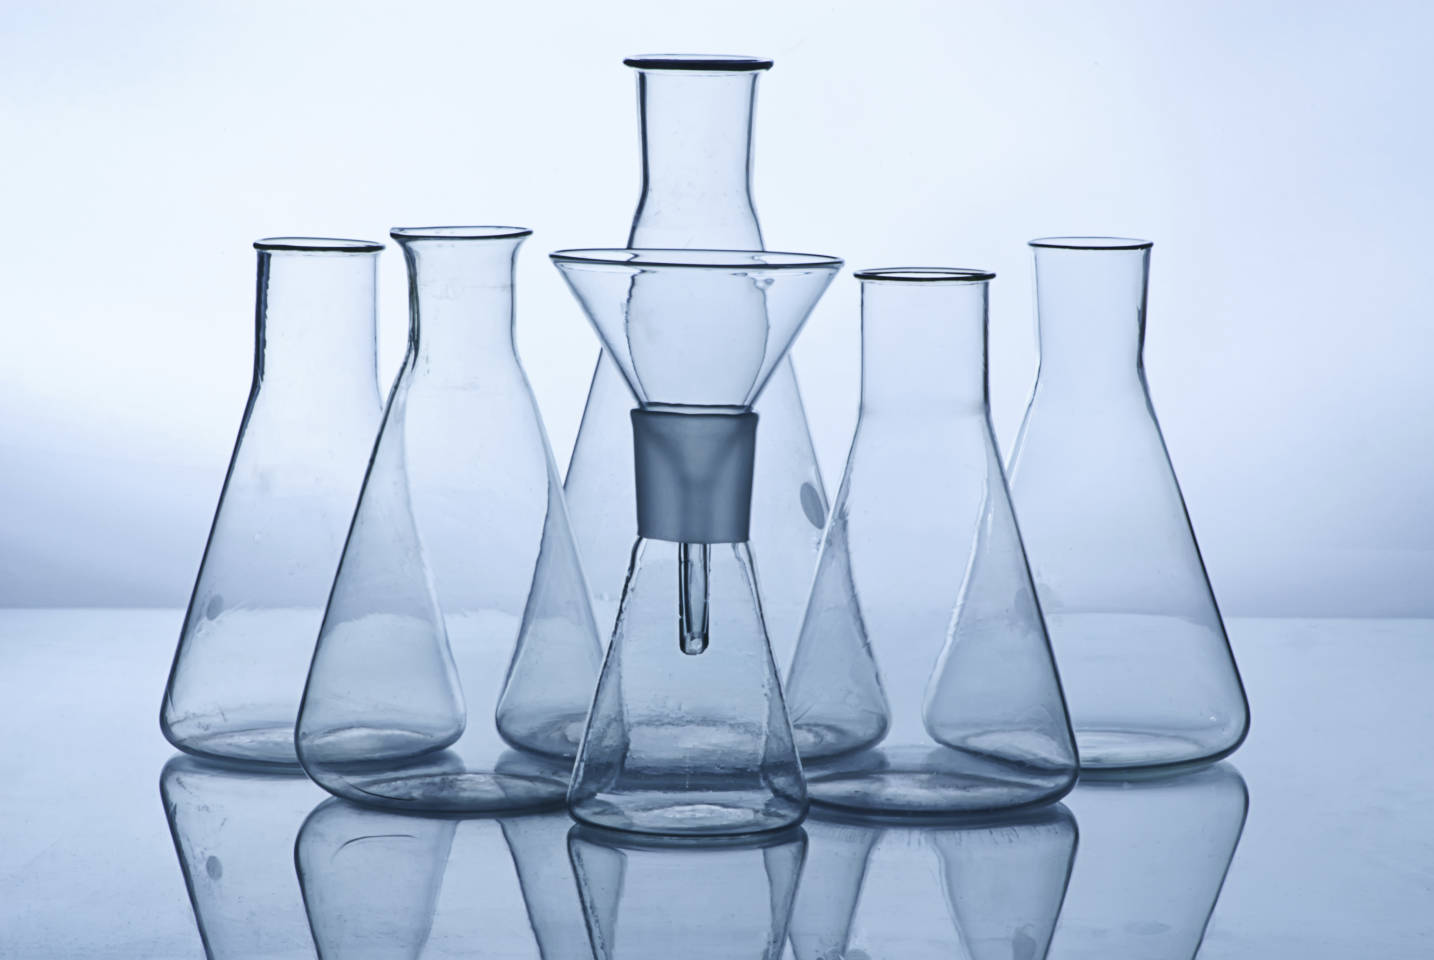 funnels and beakers for chemistry